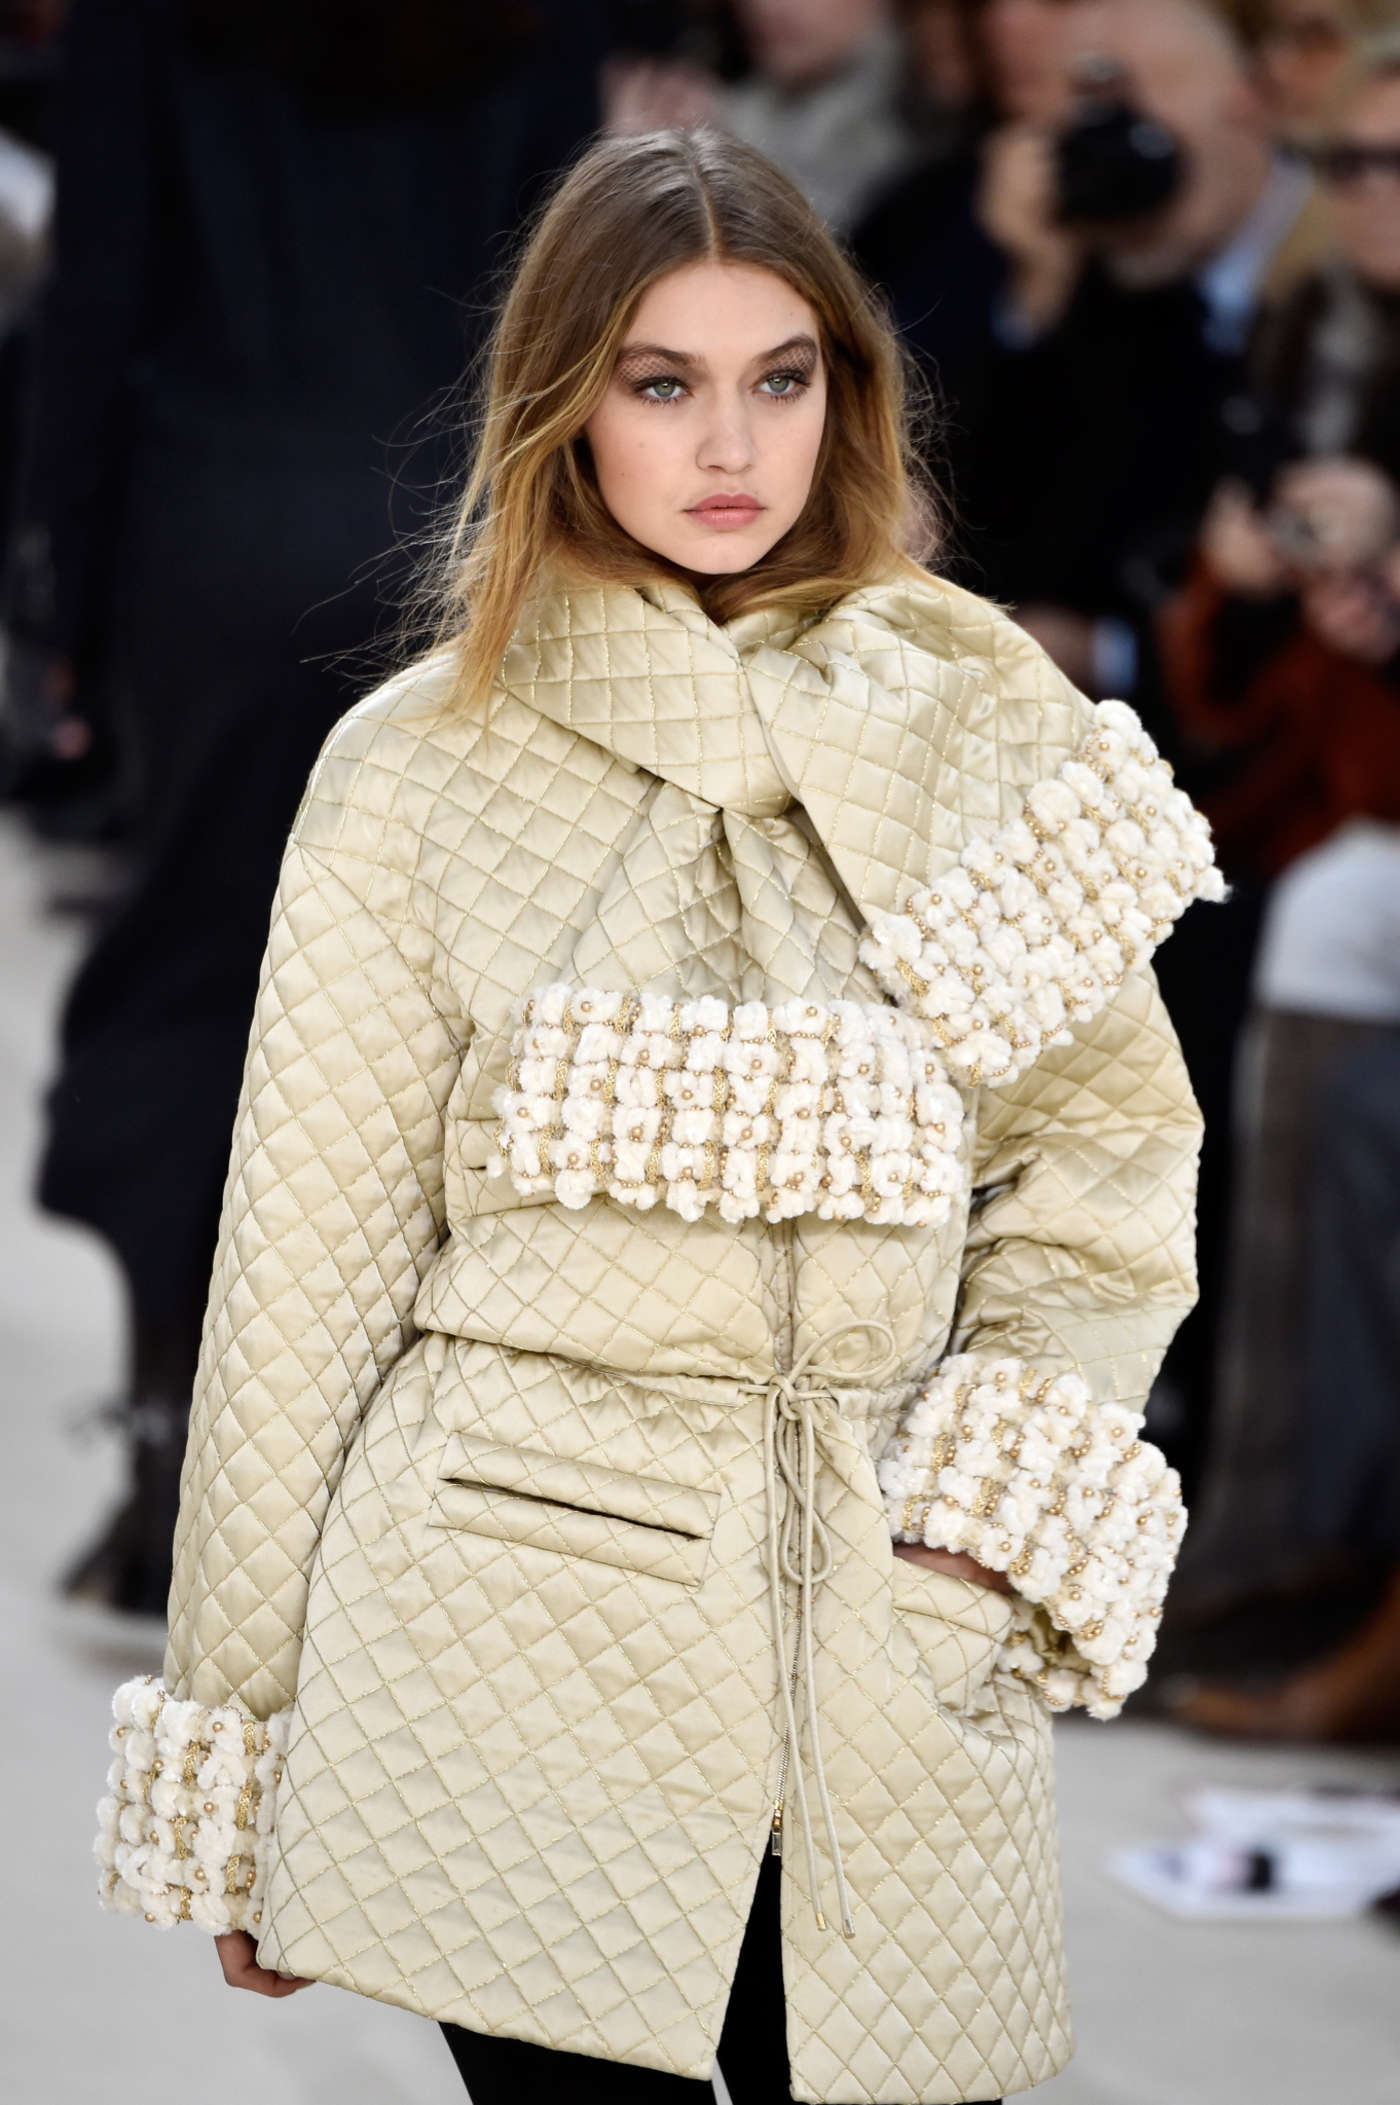 Gigi Hadid Chanel Fashion Show 2016 In Paris